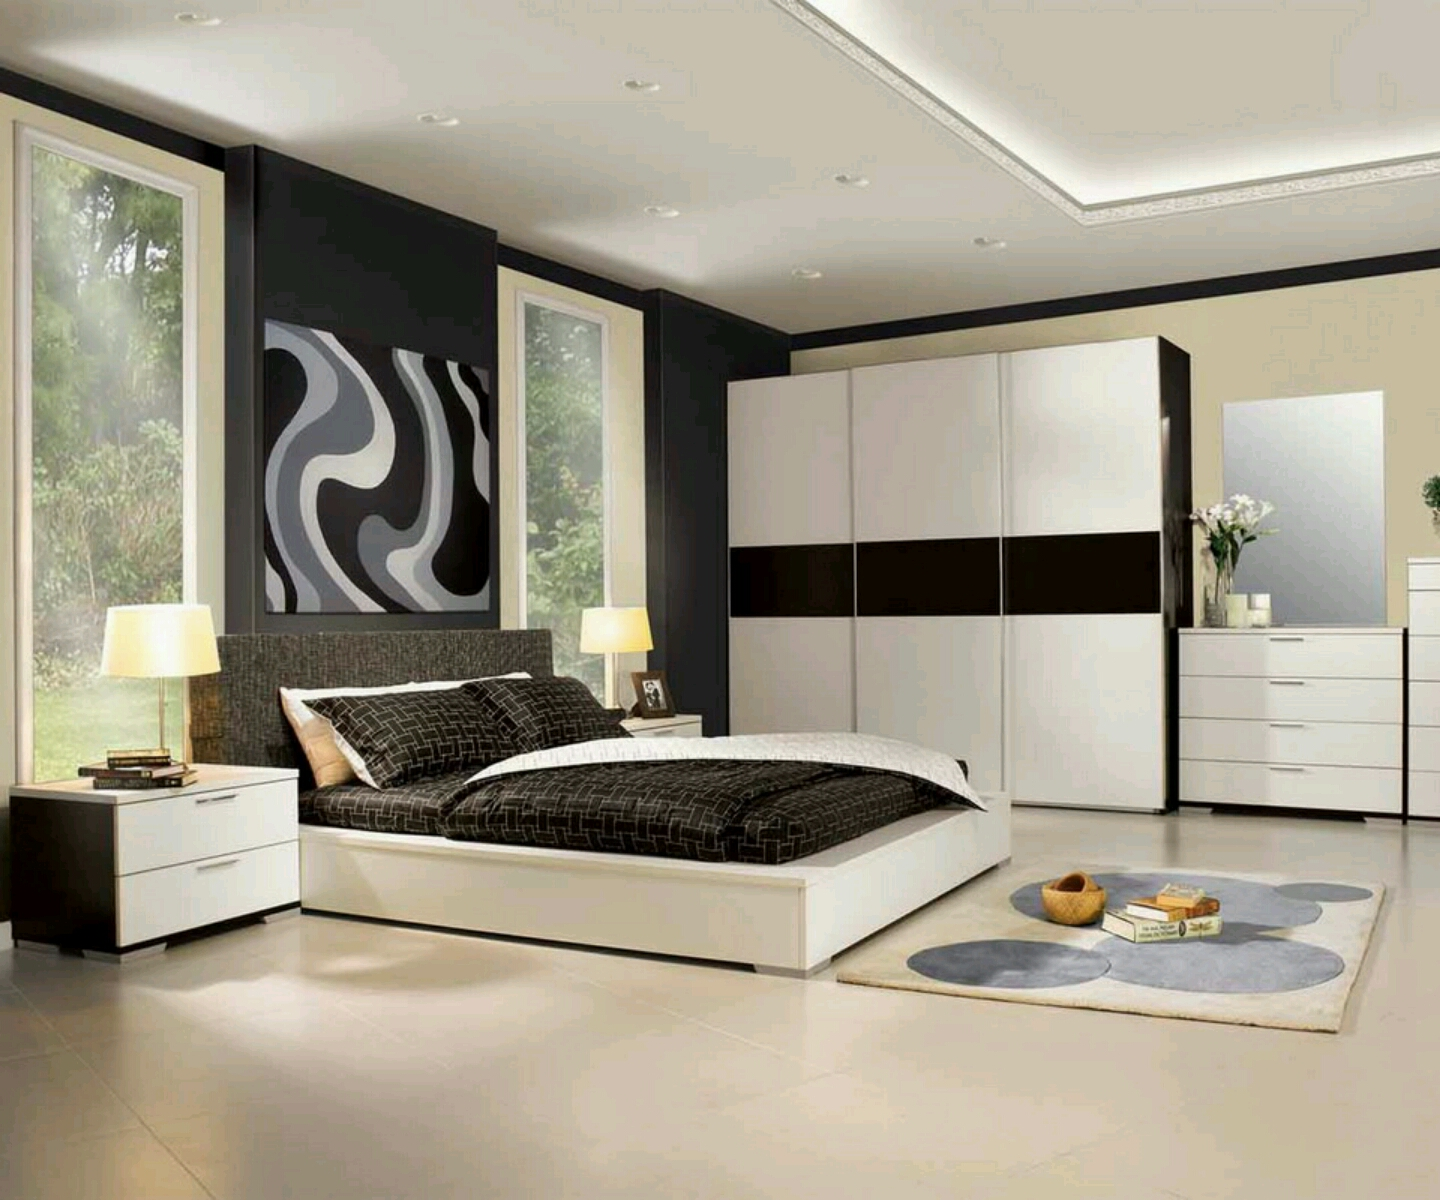 Outstanding Bedroom Furniture Ideas 1440 x 1200 · 911 kB · jpeg